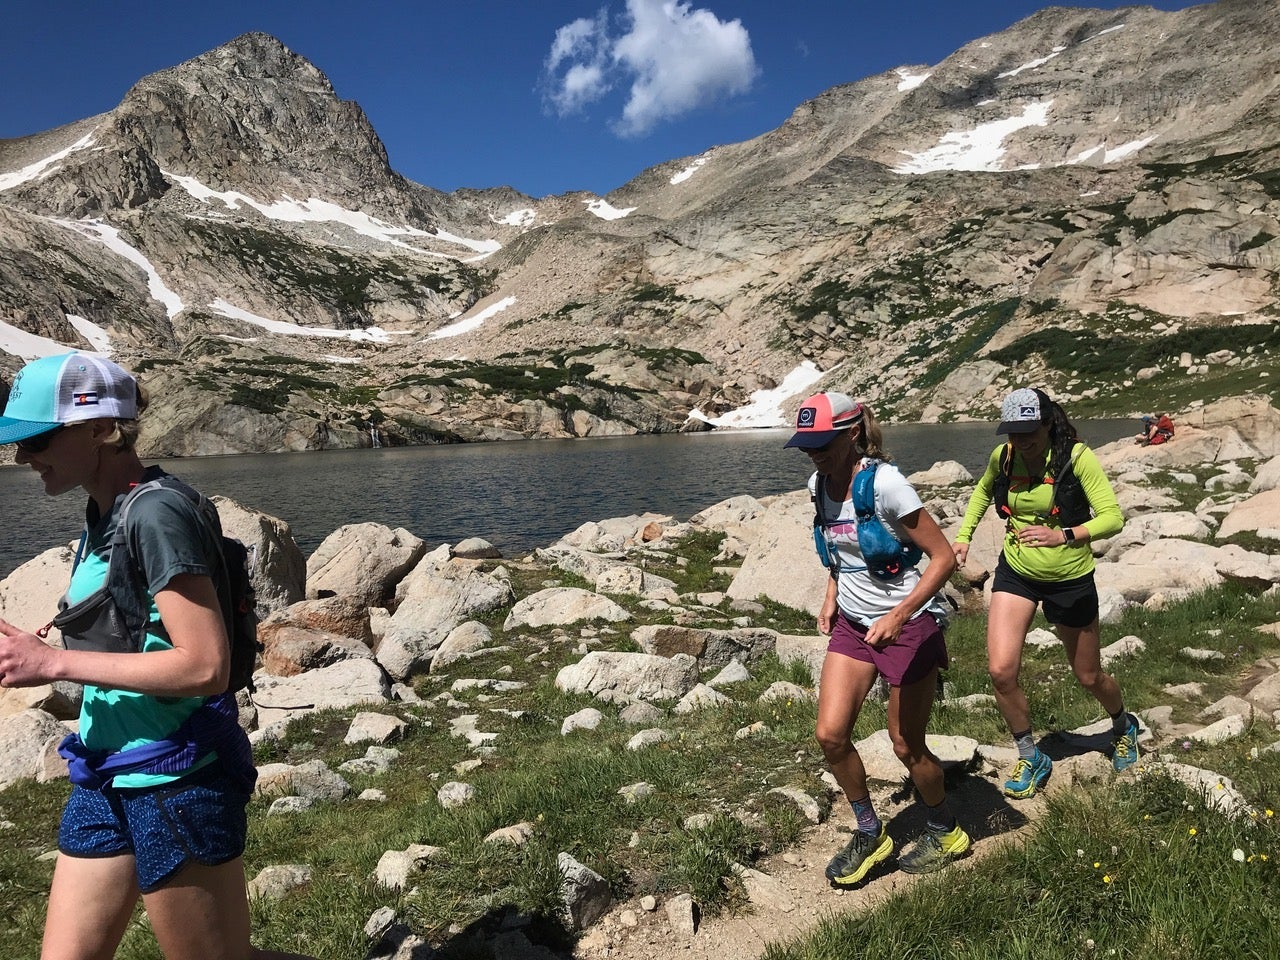 Mountain running during a camping trip